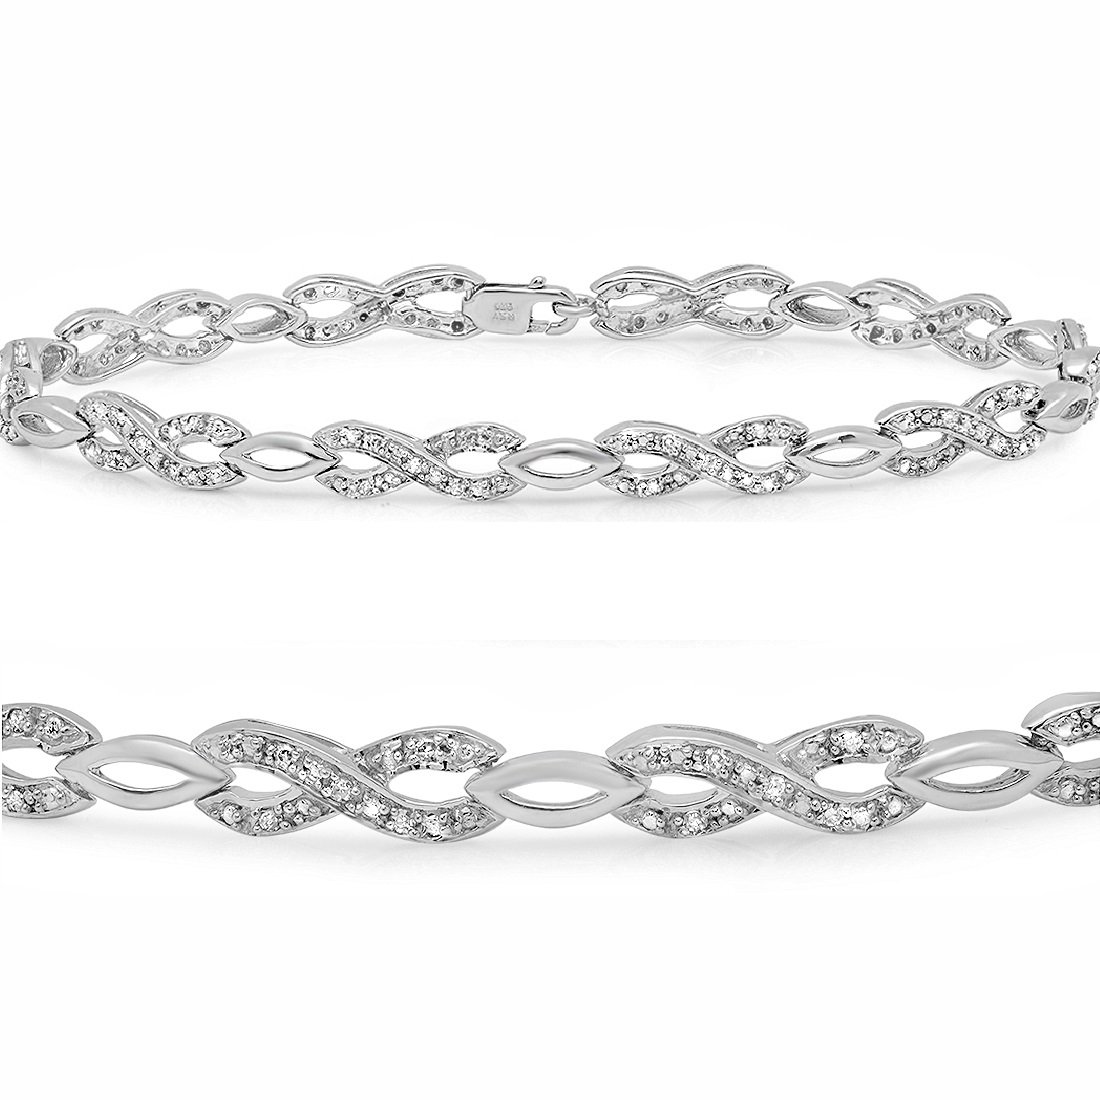 AGS Certified 1/4ct Infinity Diamond Tennis Bracelet in Sterling Silver 7 inch by Amanda Rose Collection